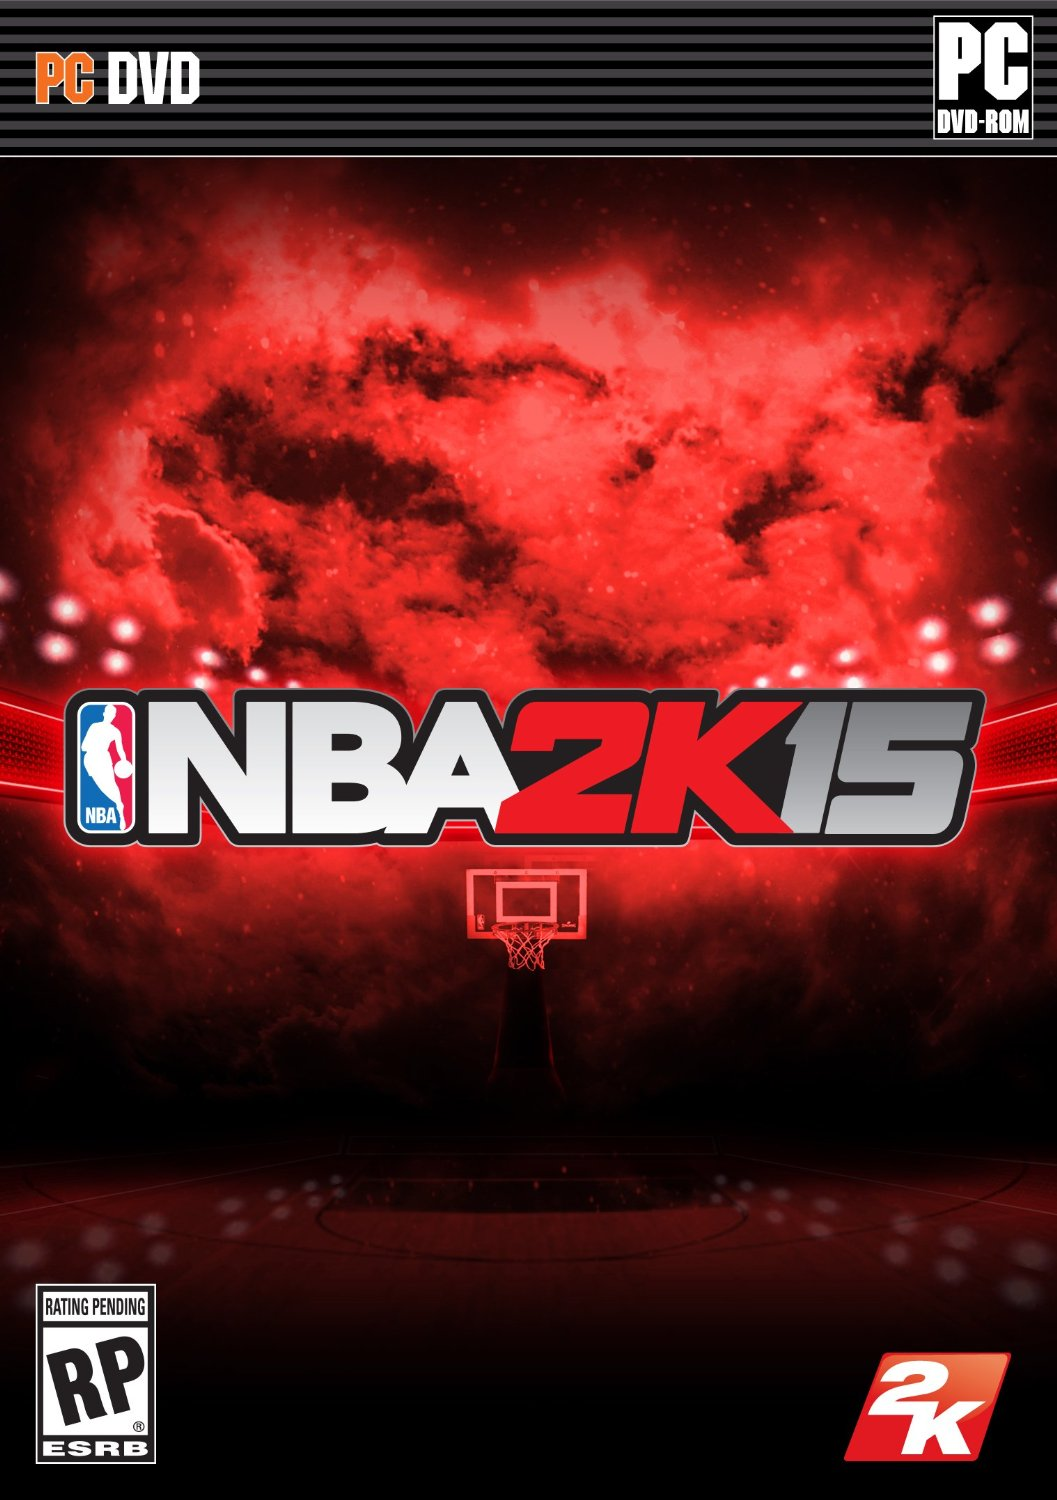 NBA 2K15 PC Placeholder Box Art